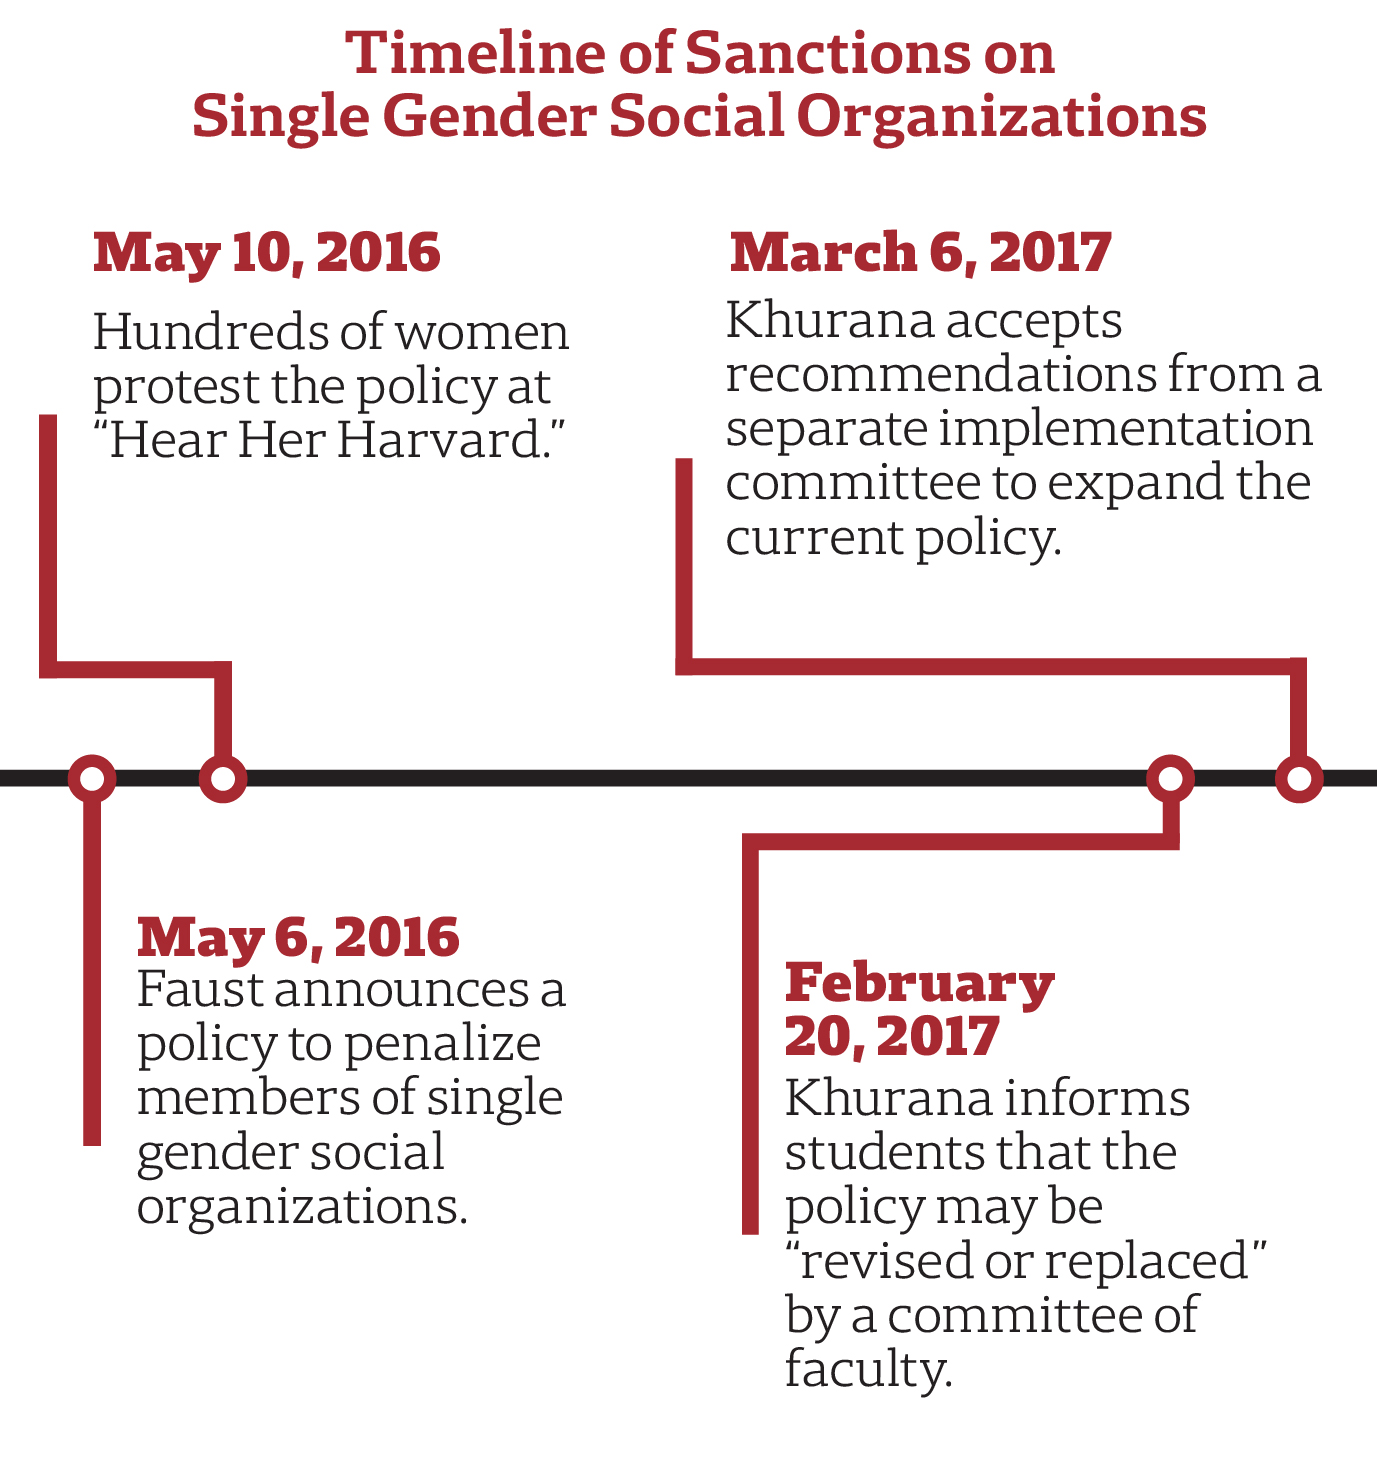 Timeline of Sanctions on Single Gender Social Organizations